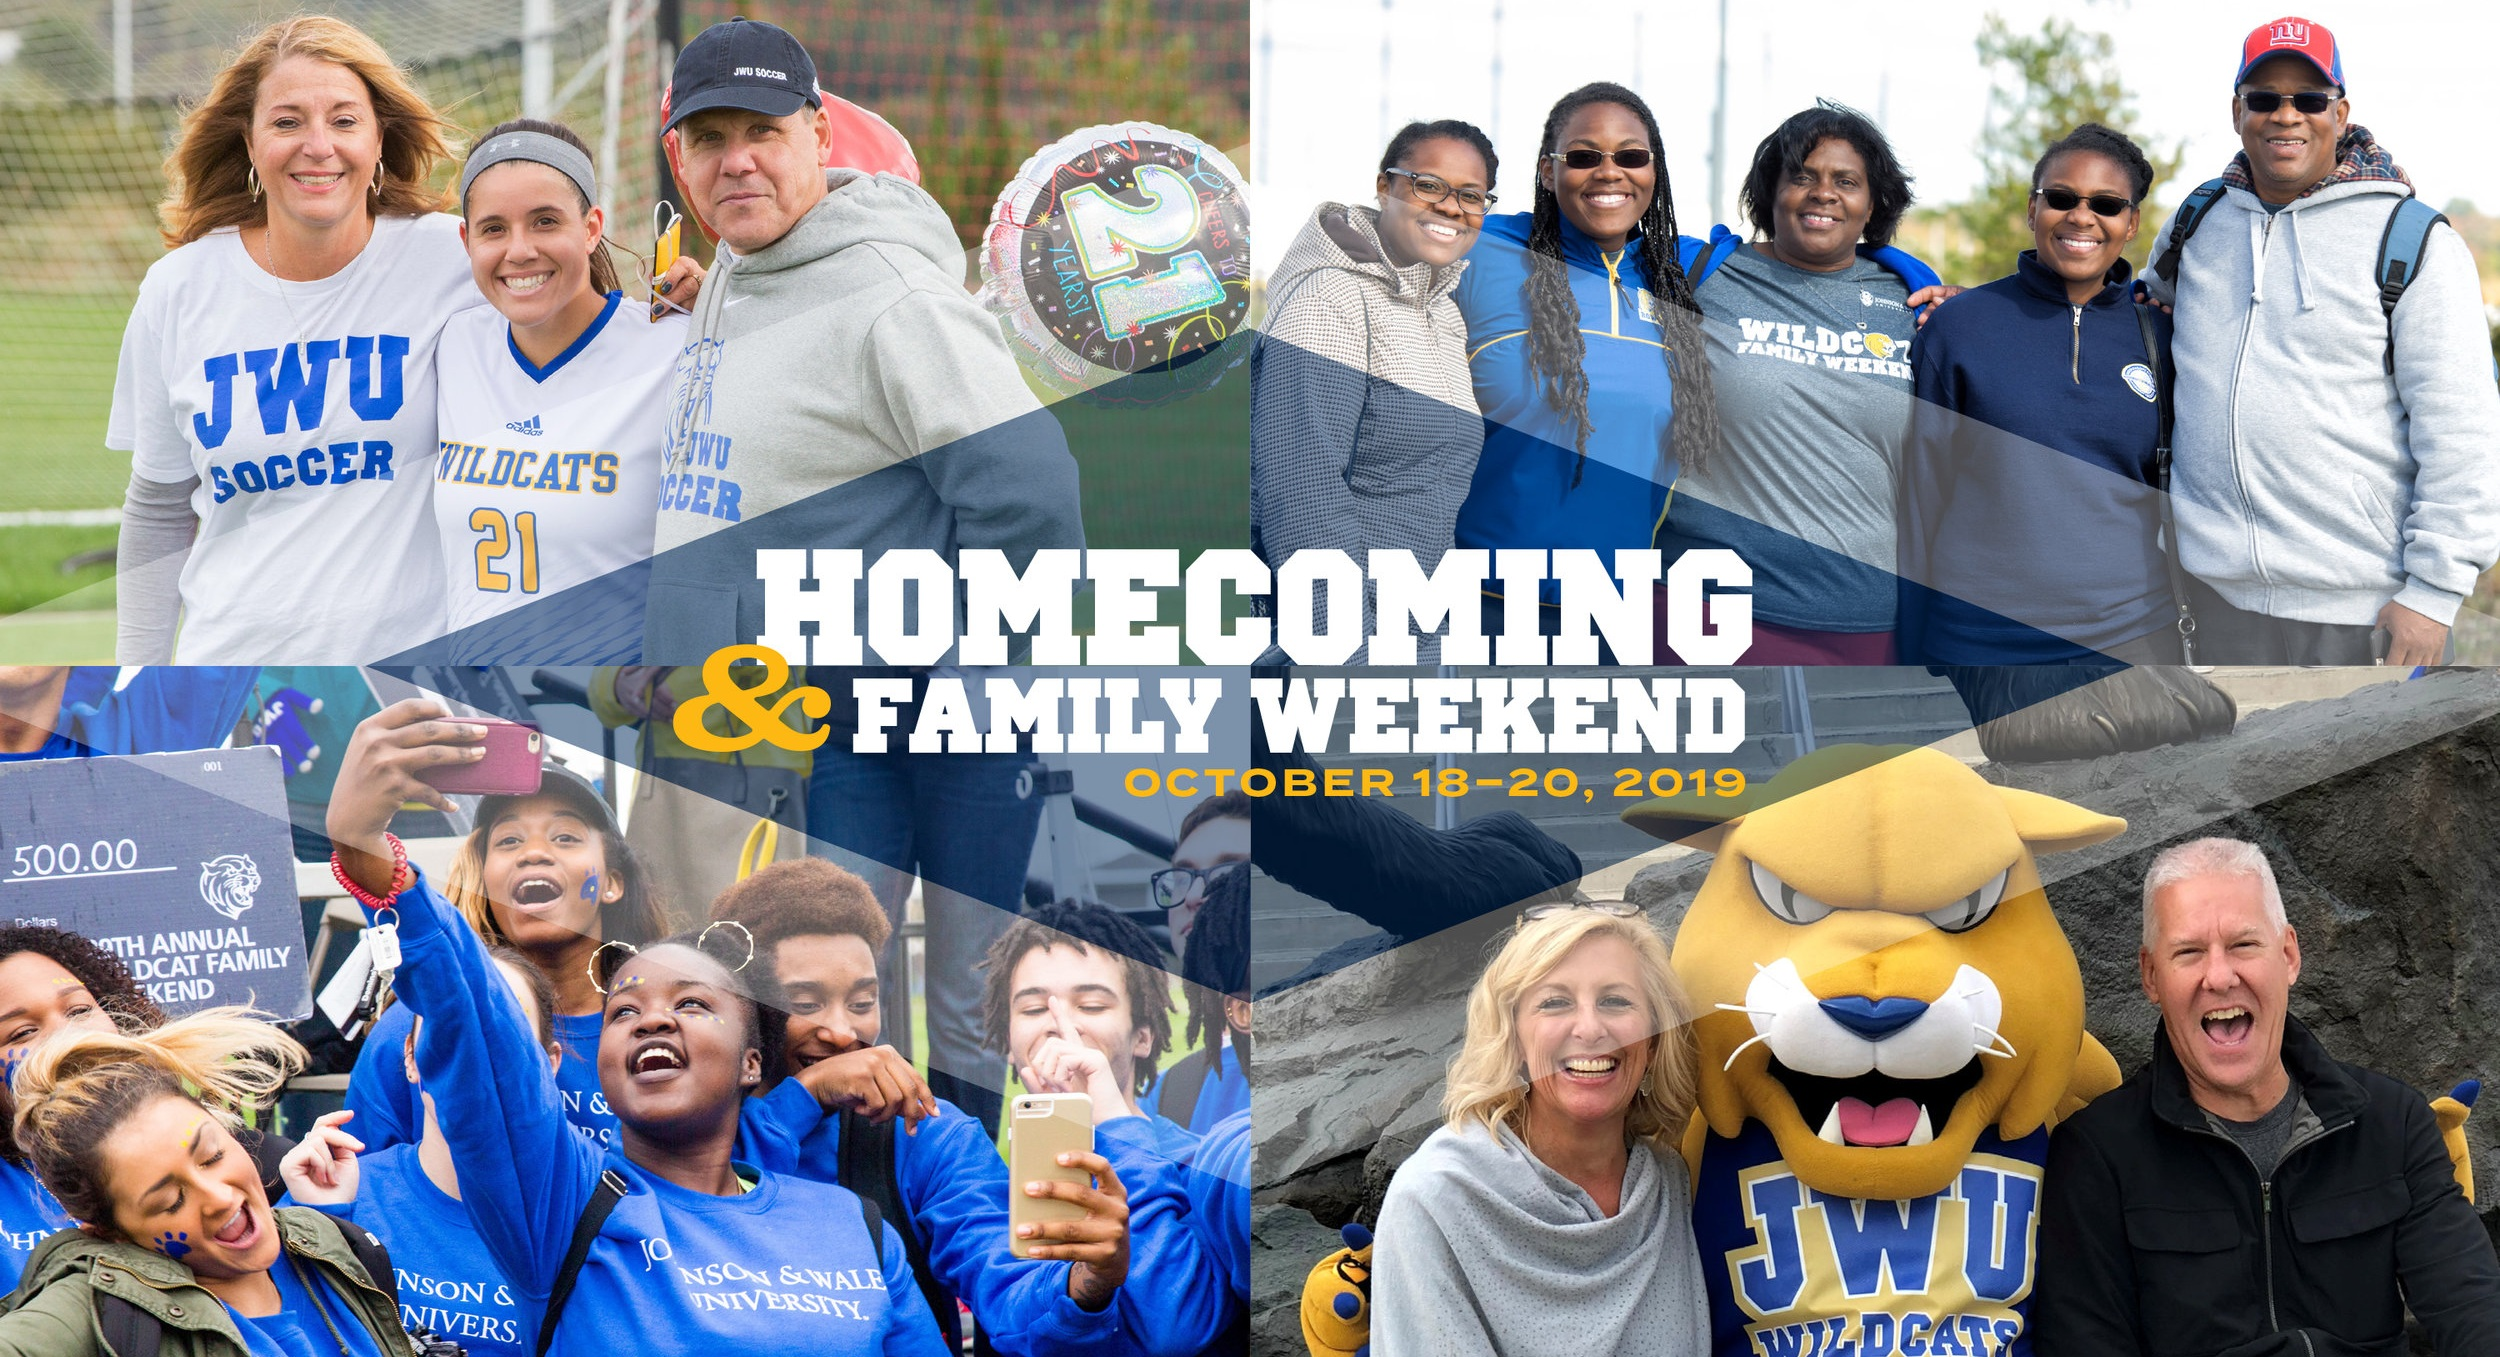 Homecoming & Family Weekend    registration is live. Check out the full schedule of activities and events online.